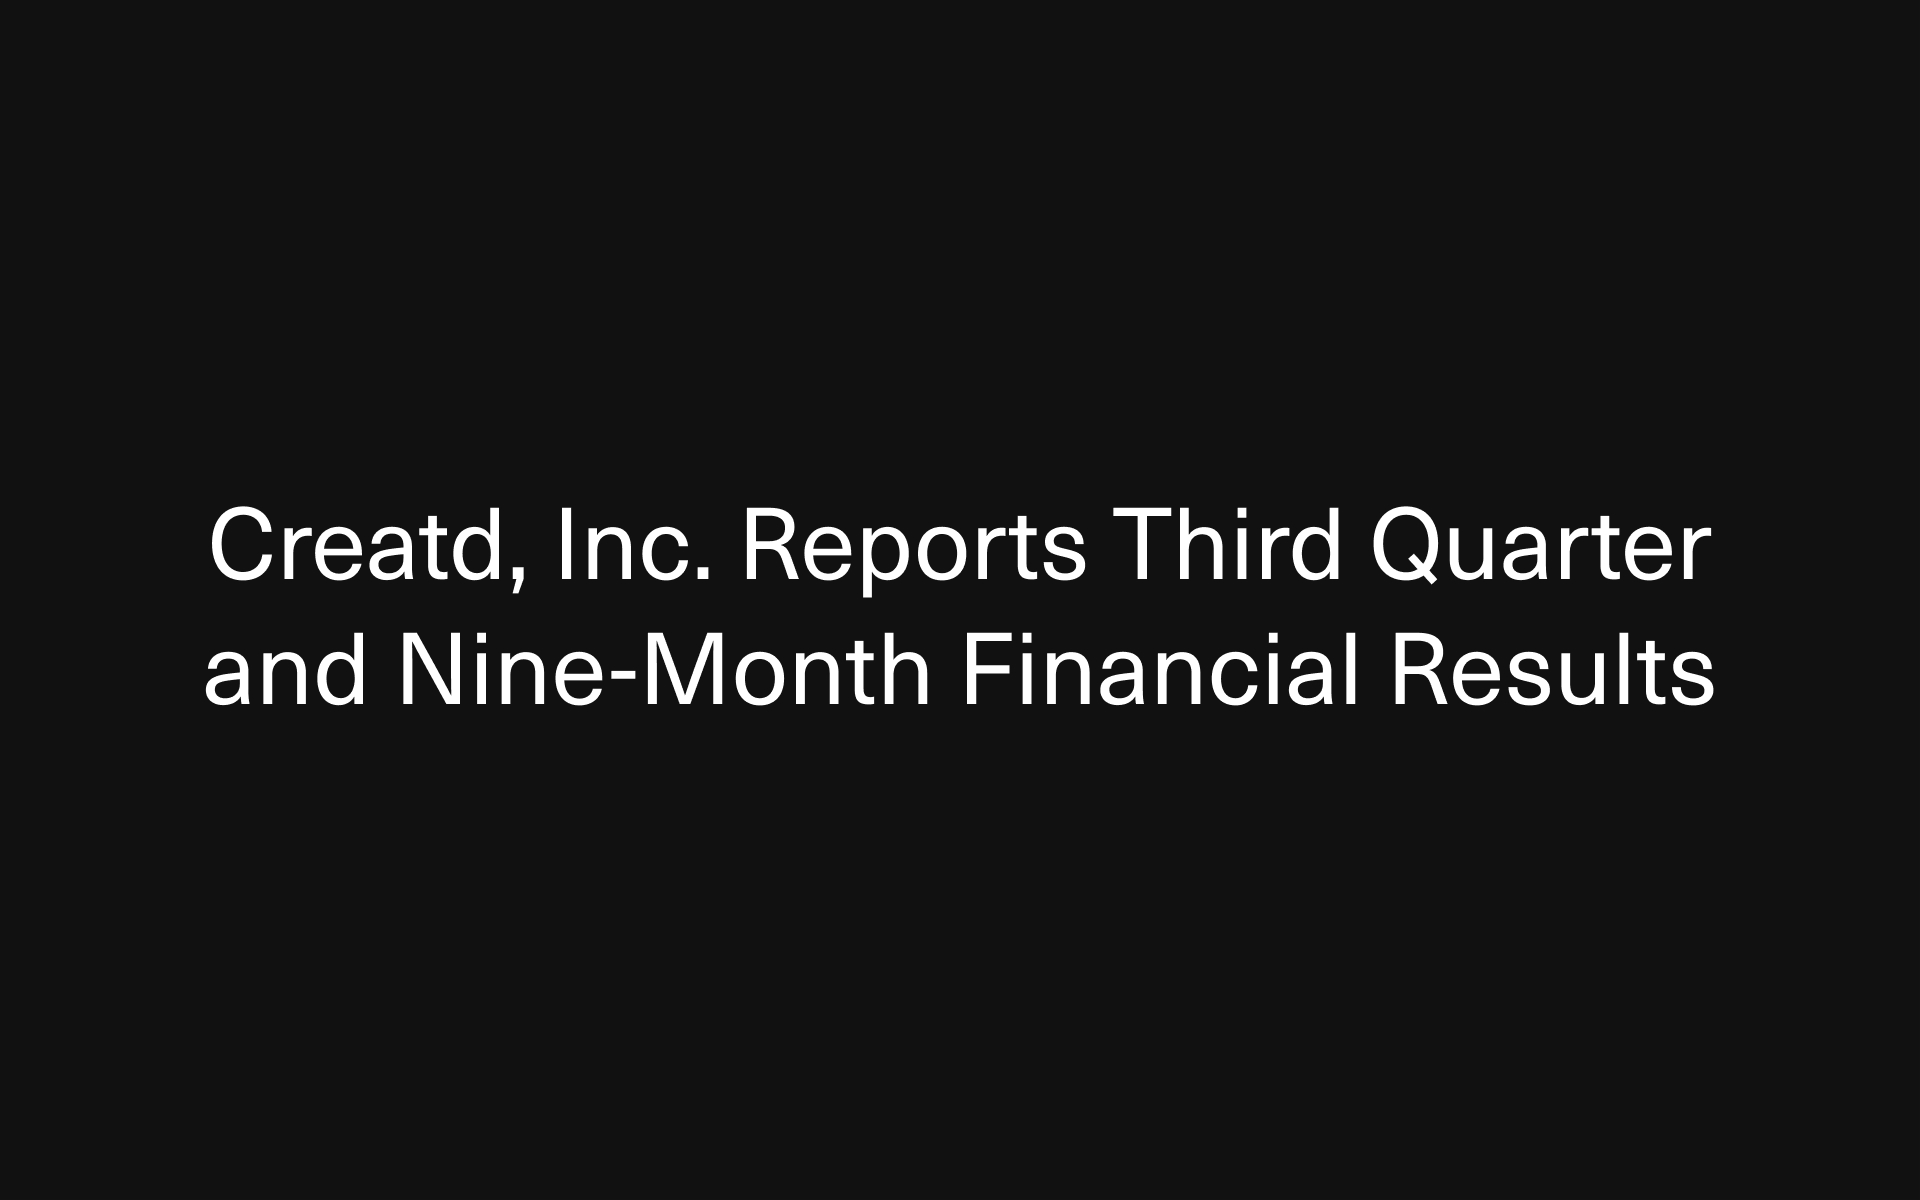 Creatd, Inc. Reports Third Quarter and Nine-Month Financial Results